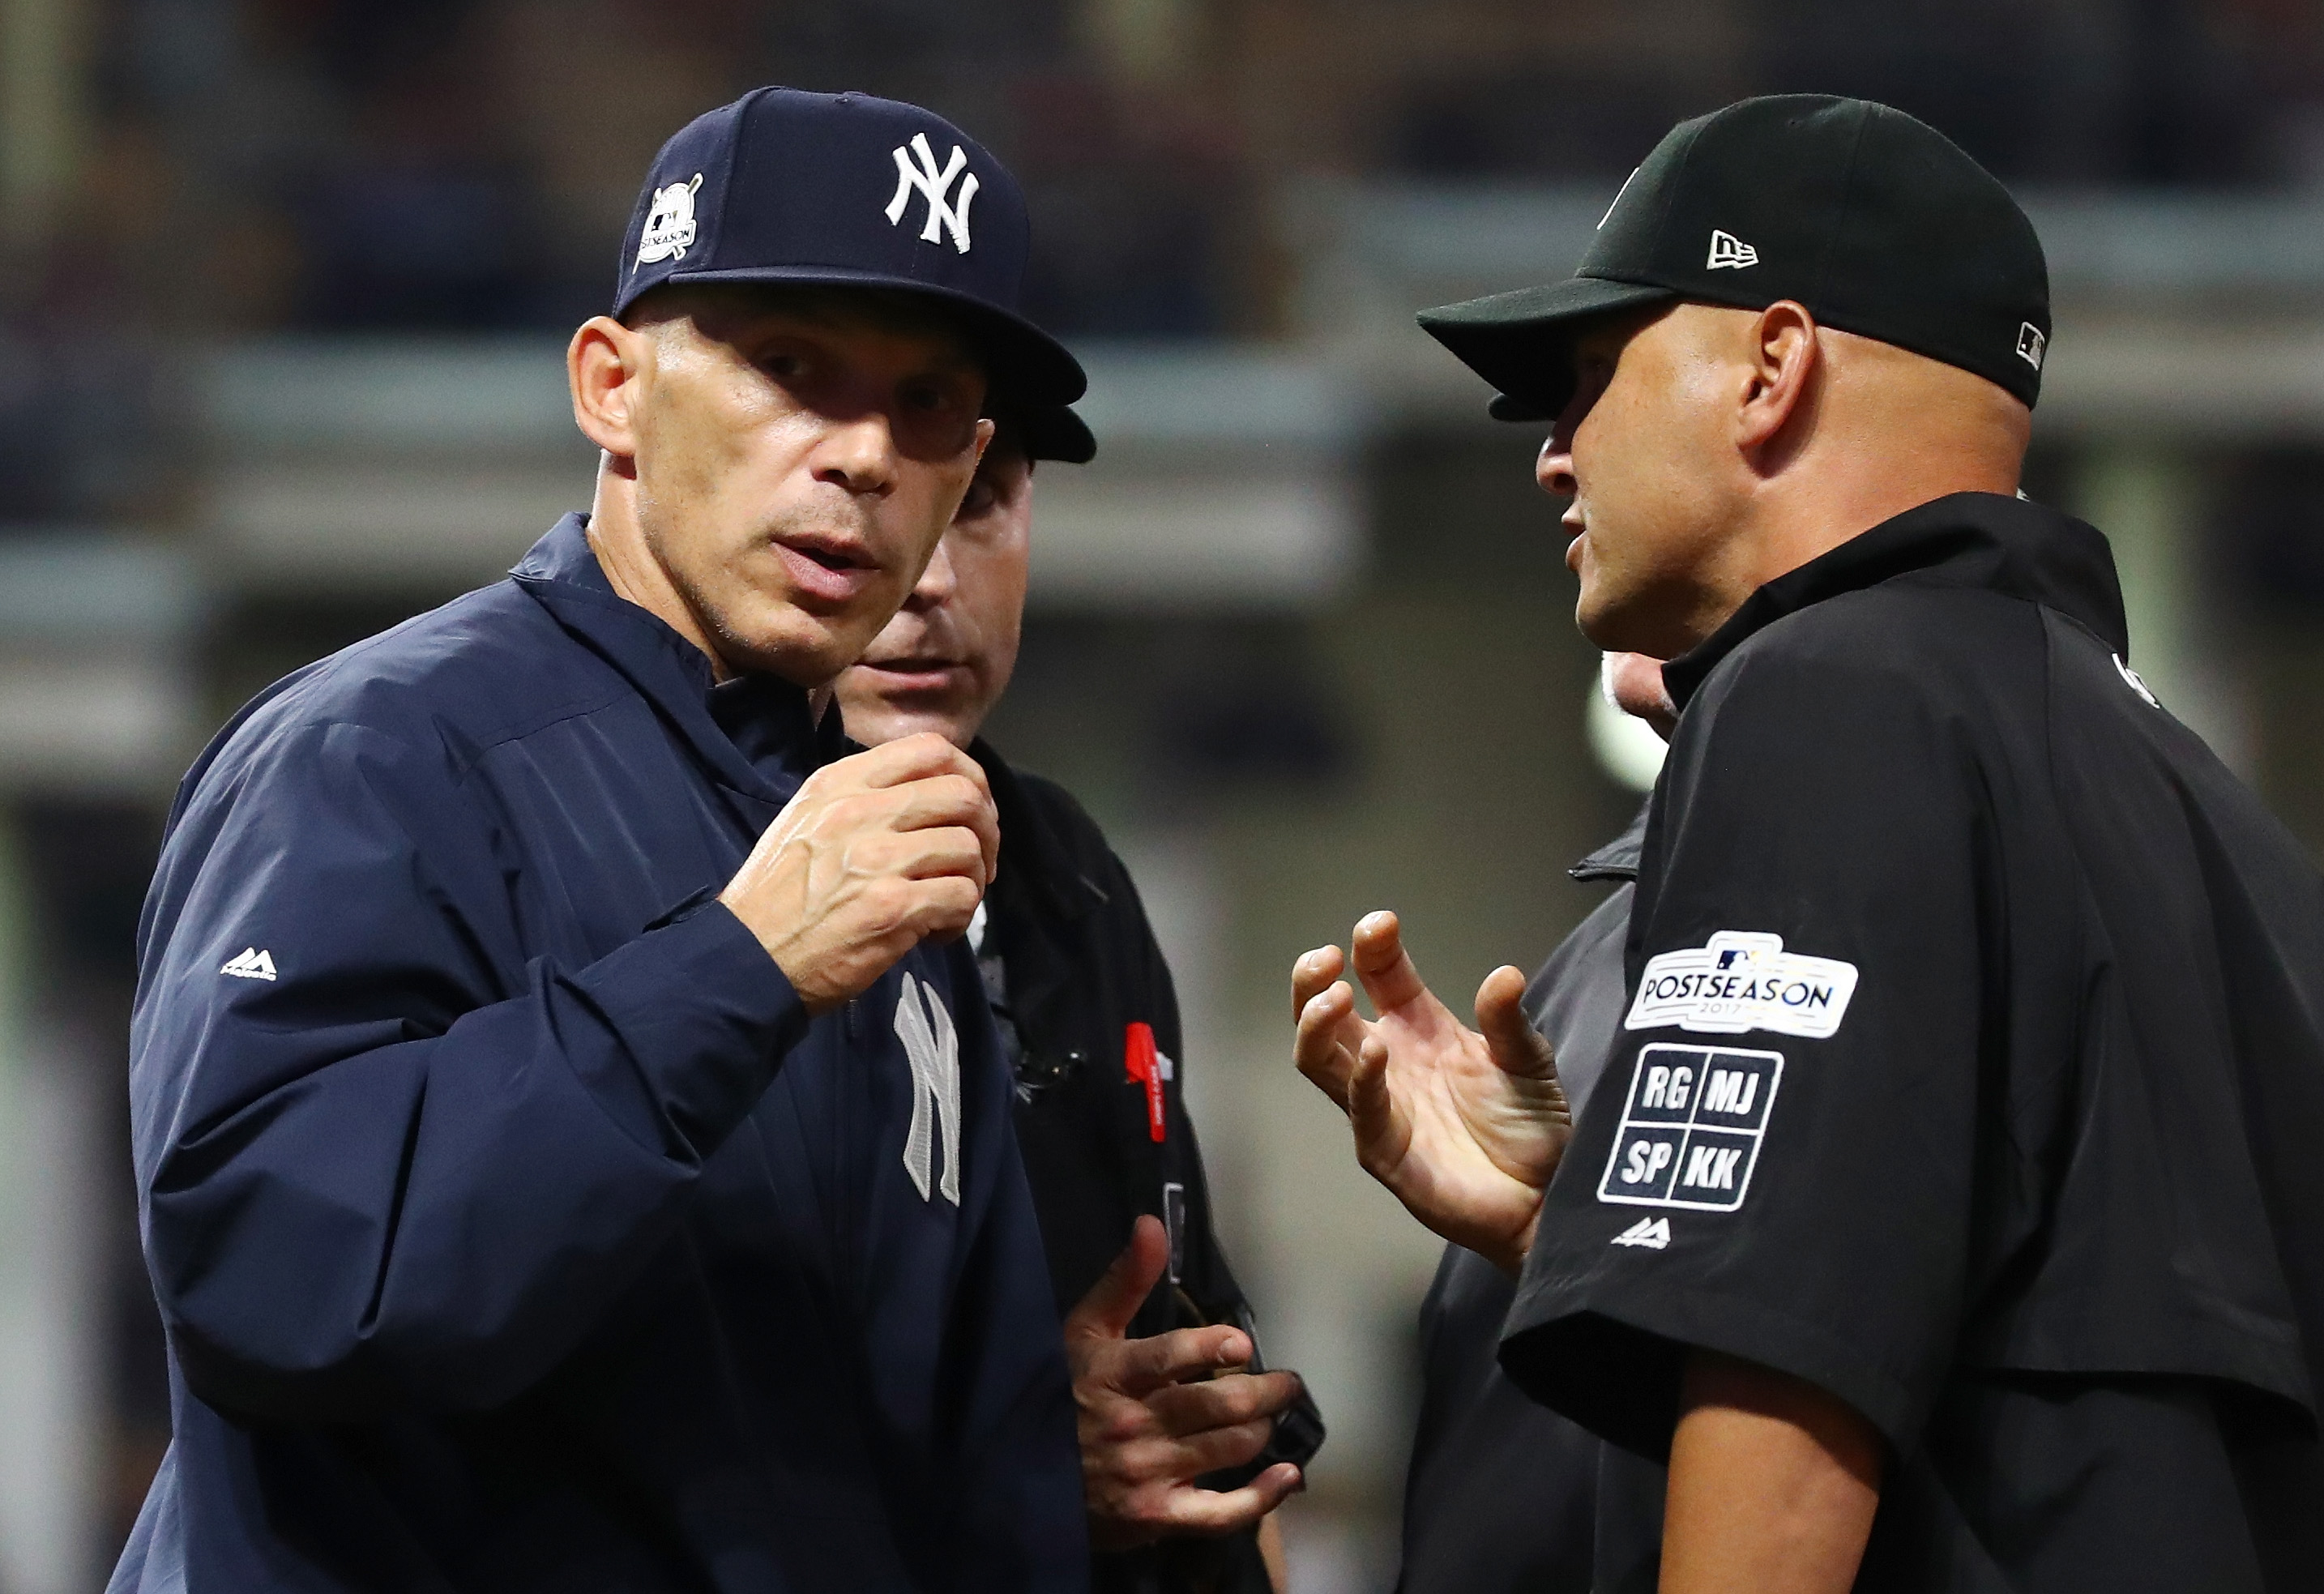 ALDS Game 4 Prediction: Will Yankees stay alive vs. Indians? 10/9/17